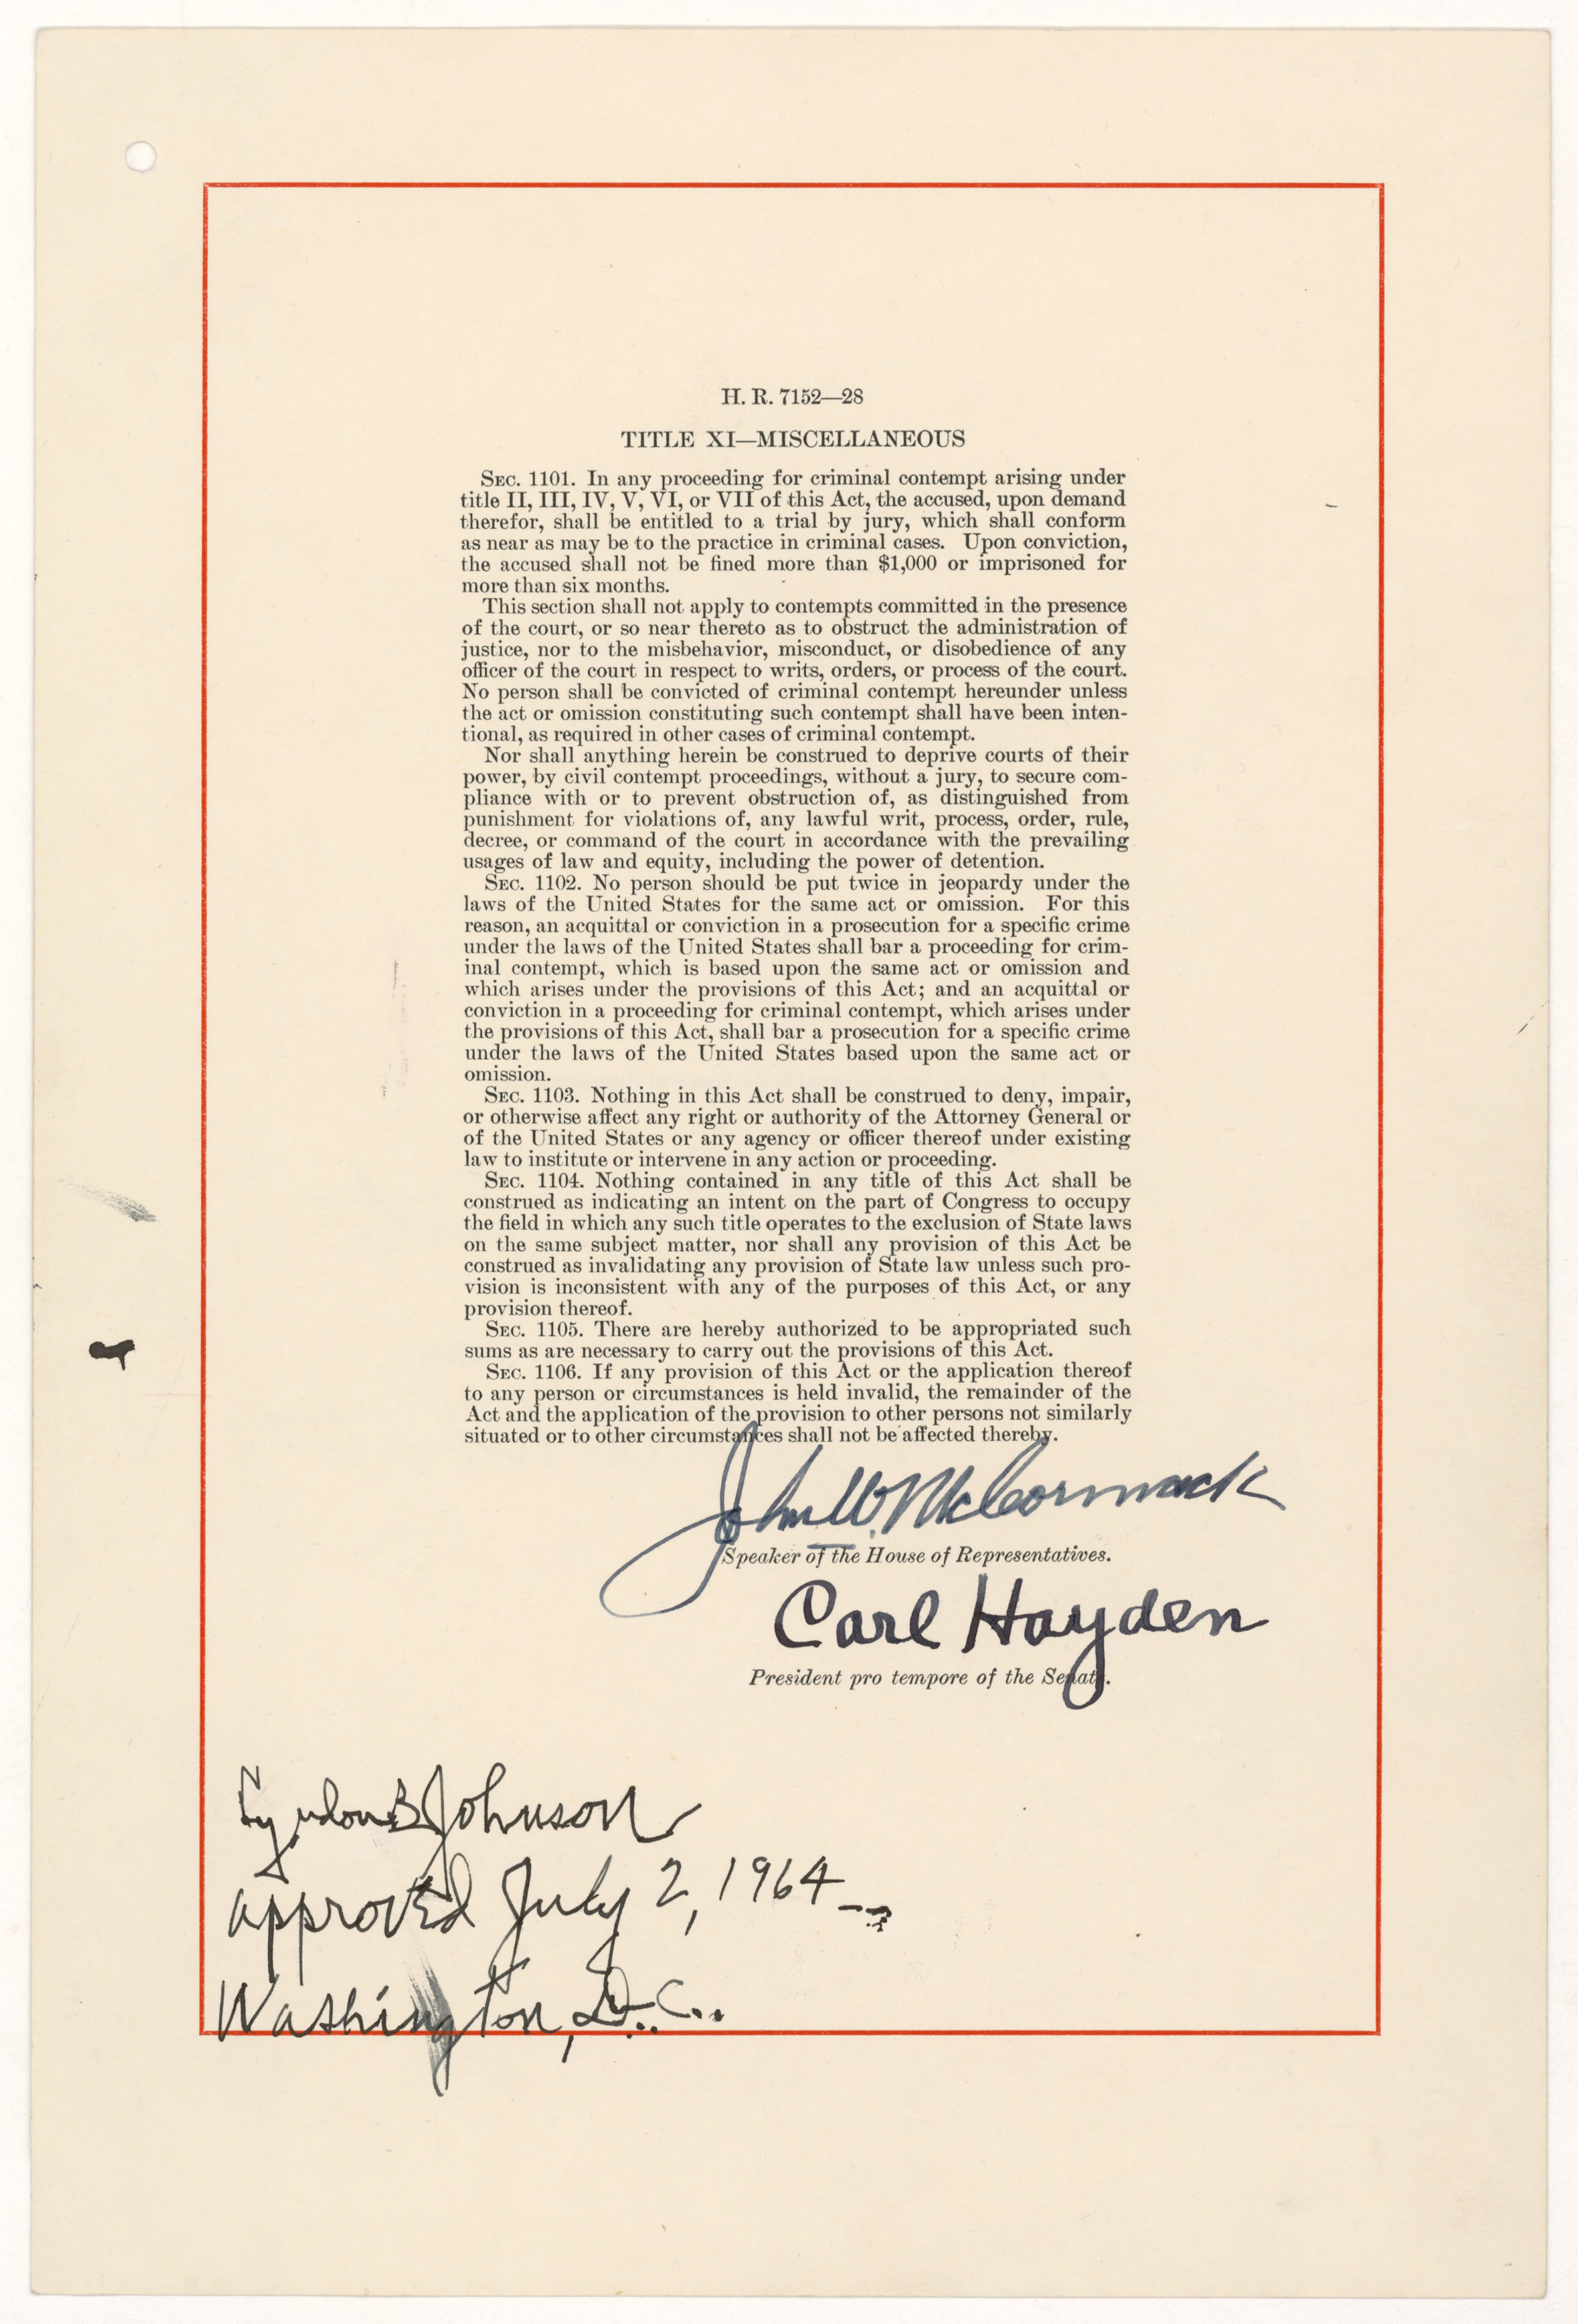 The Civil Rights Act of 1964, signature page, July 2, 1964 (National Archives Identifier 299891)